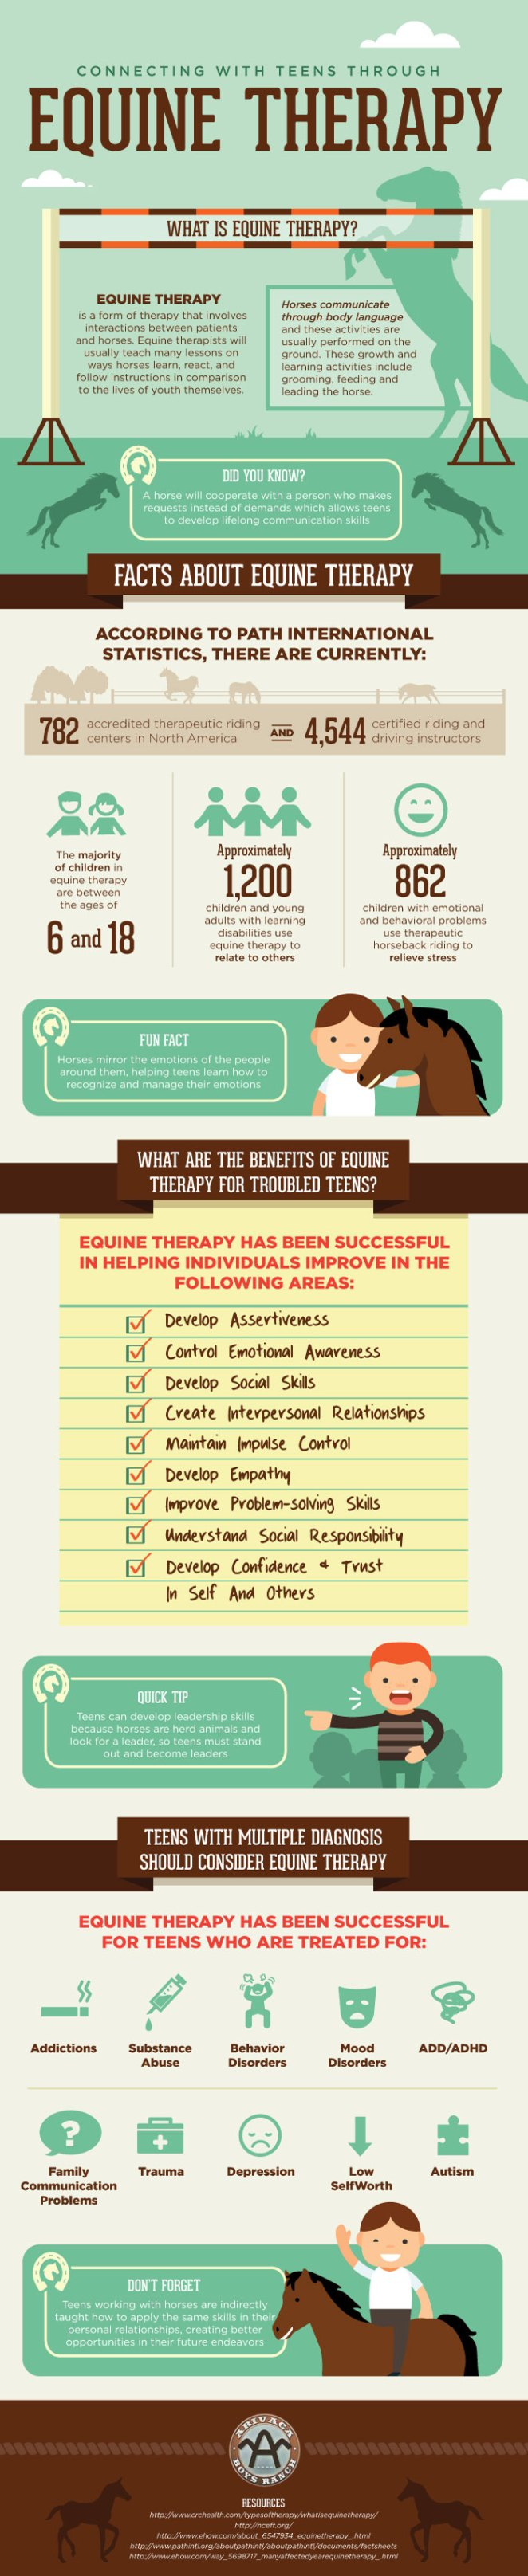 Connecting-With-Teens-Through-Equine-Therapy-Infographic